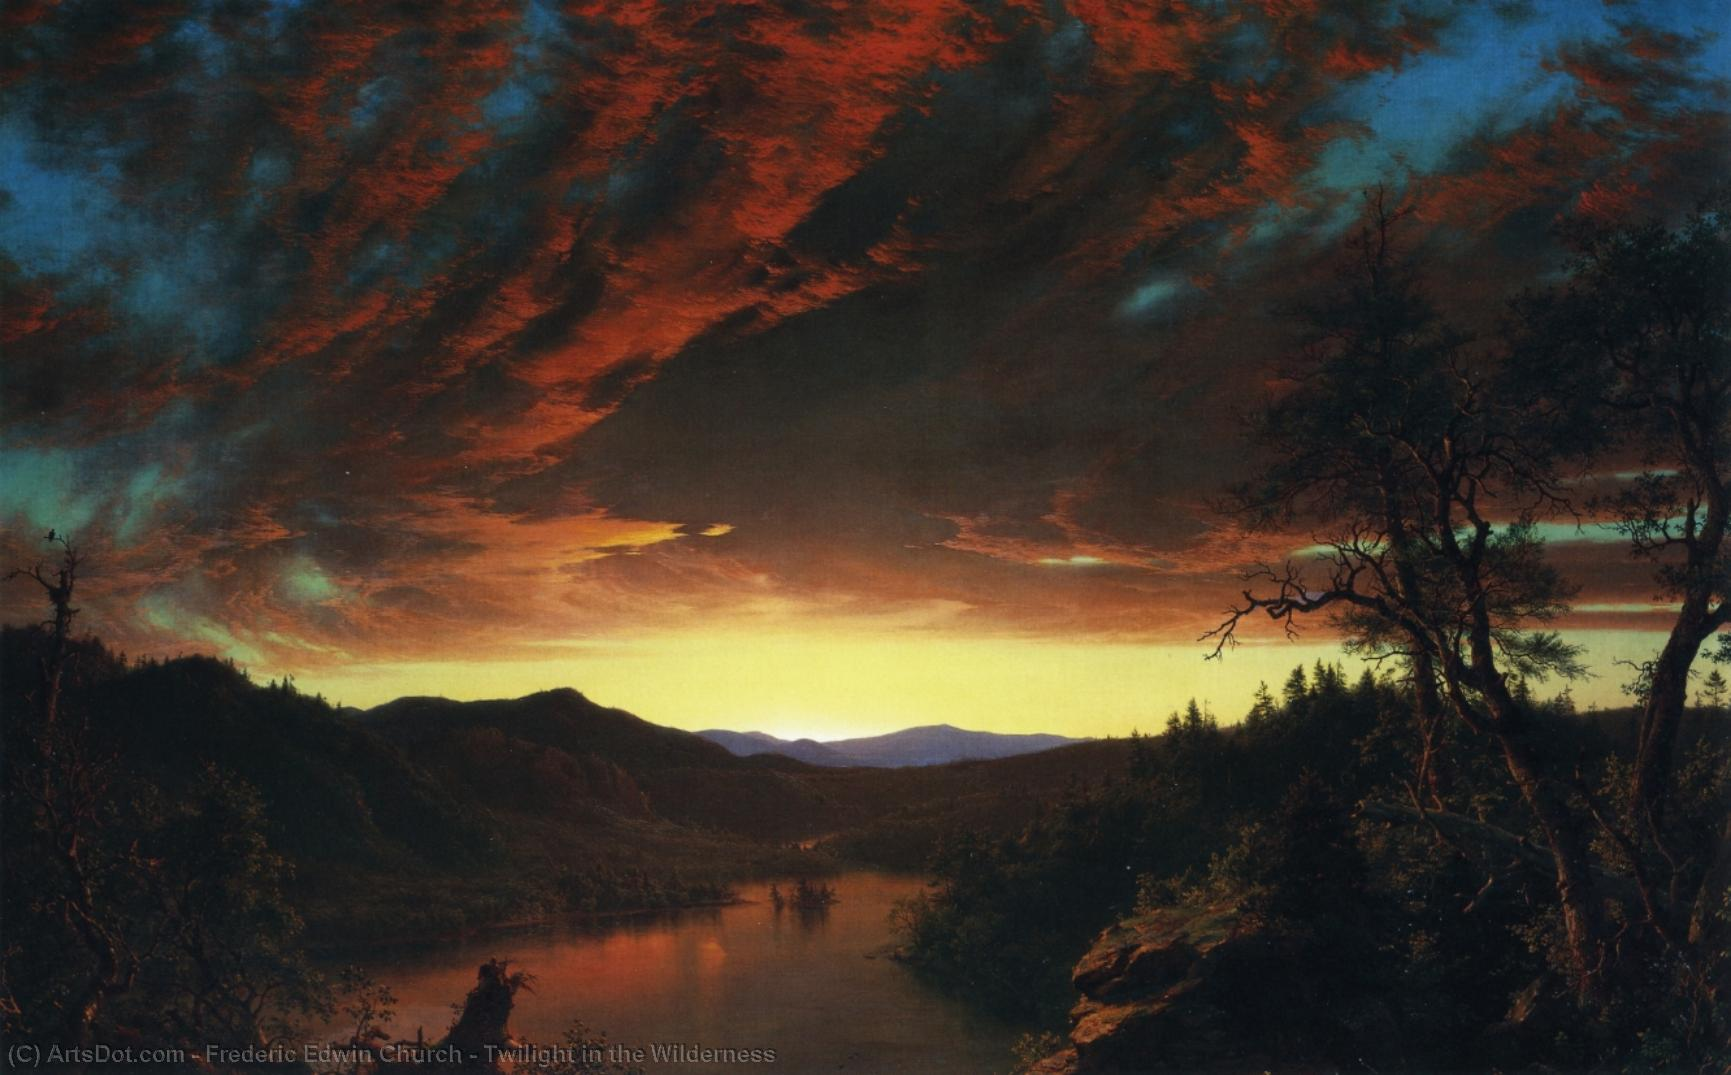 Wikioo.org - The Encyclopedia of Fine Arts - Painting, Artwork by Frederic Edwin Church - Twilight in the Wilderness